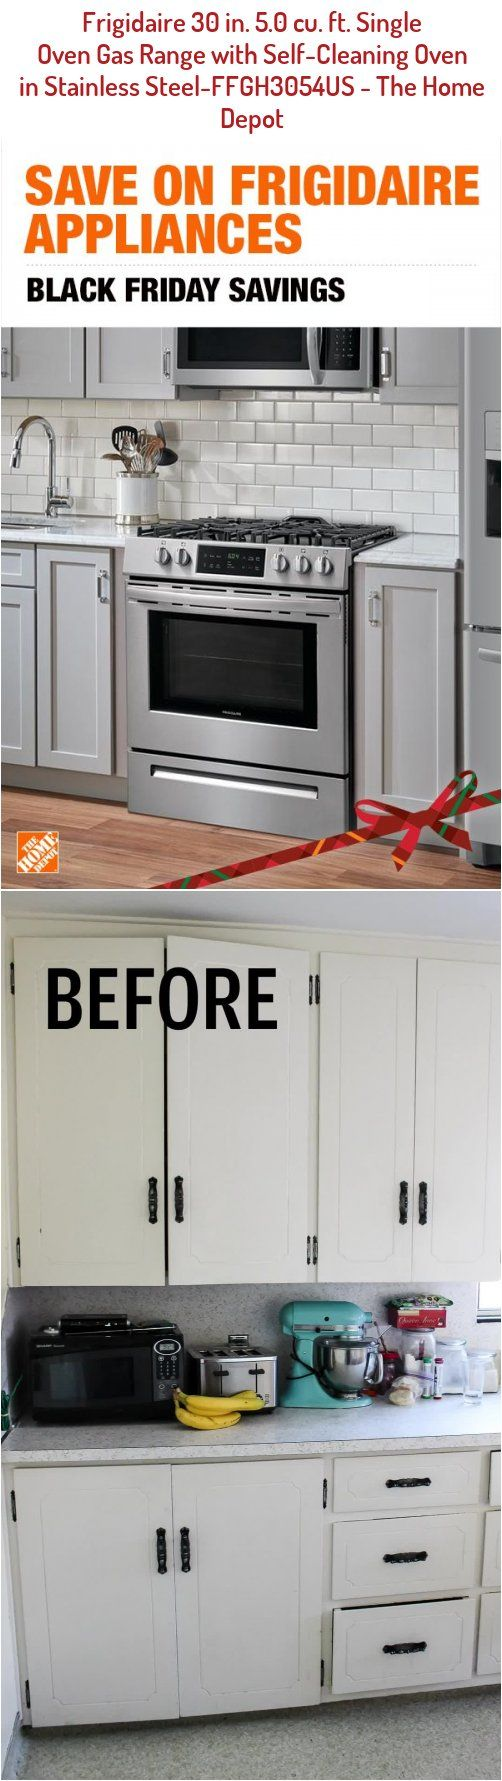 Pin By Johanne Ceceaga On Remodel Home Before And After Room Makeovers In 2020 Self Cleaning Ovens Oven Cleaning Single Oven